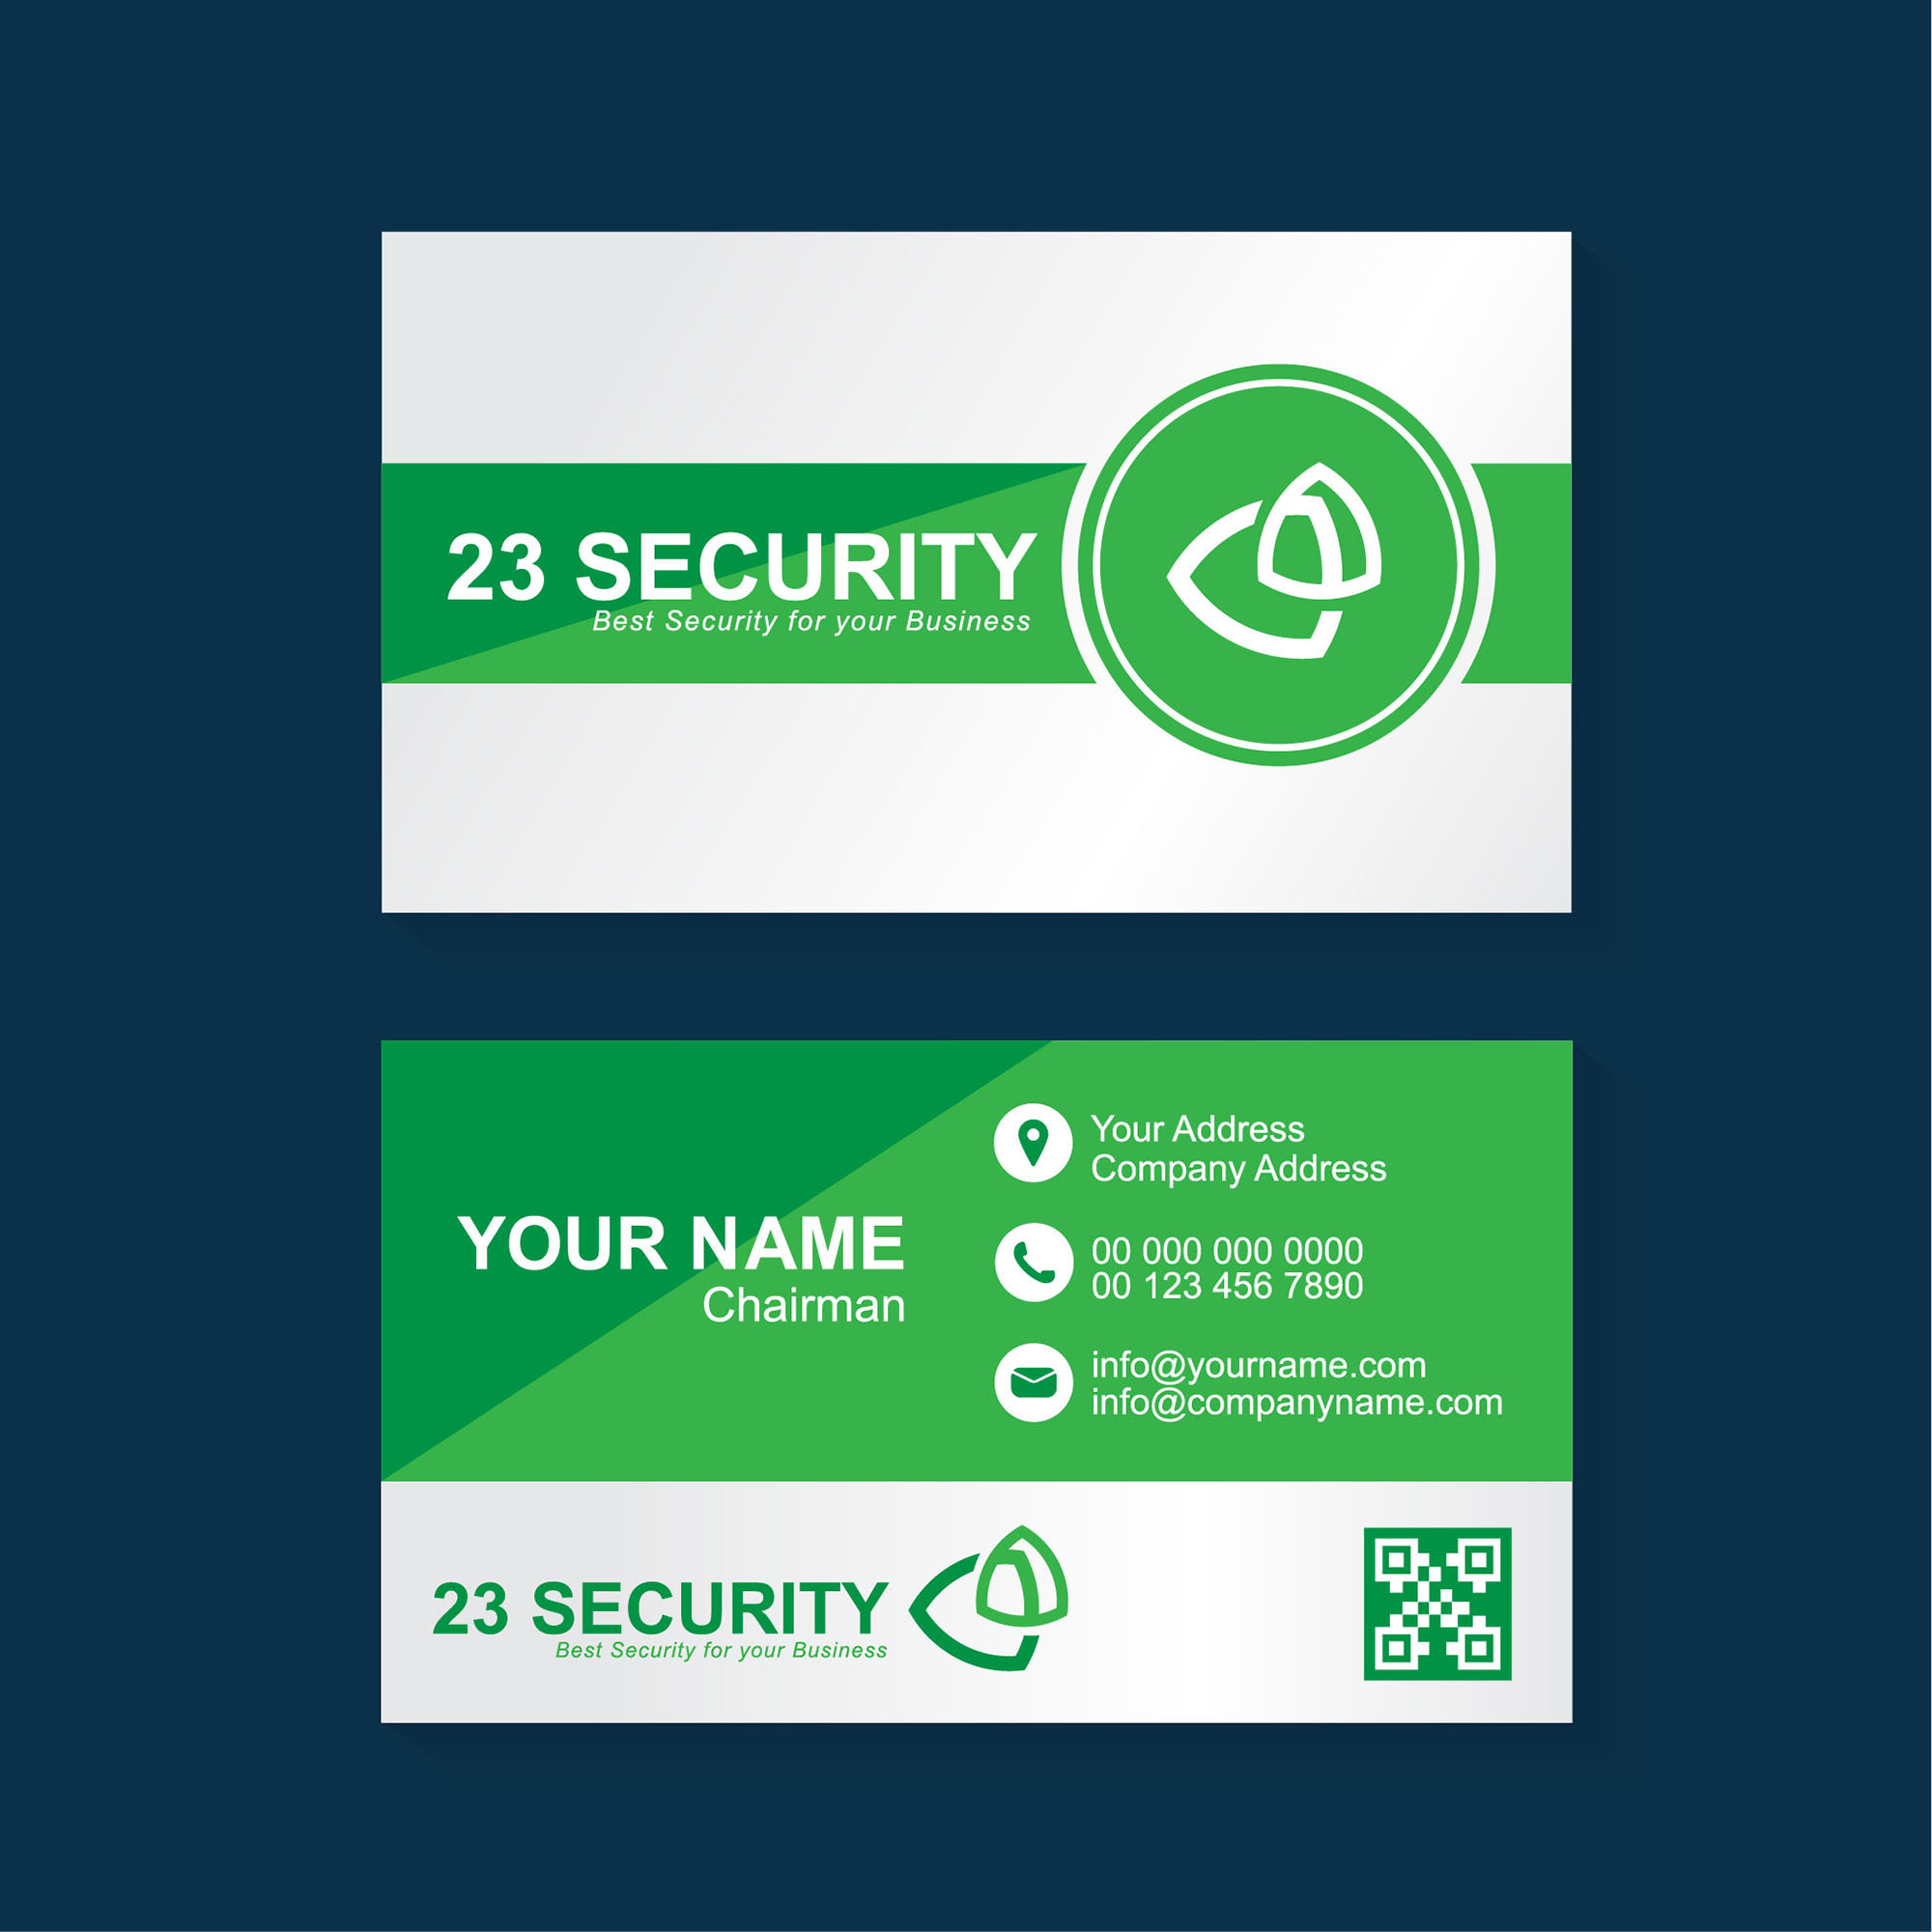 Security business card template free download wisxi business card business cards business card design business card template design templates wajeb